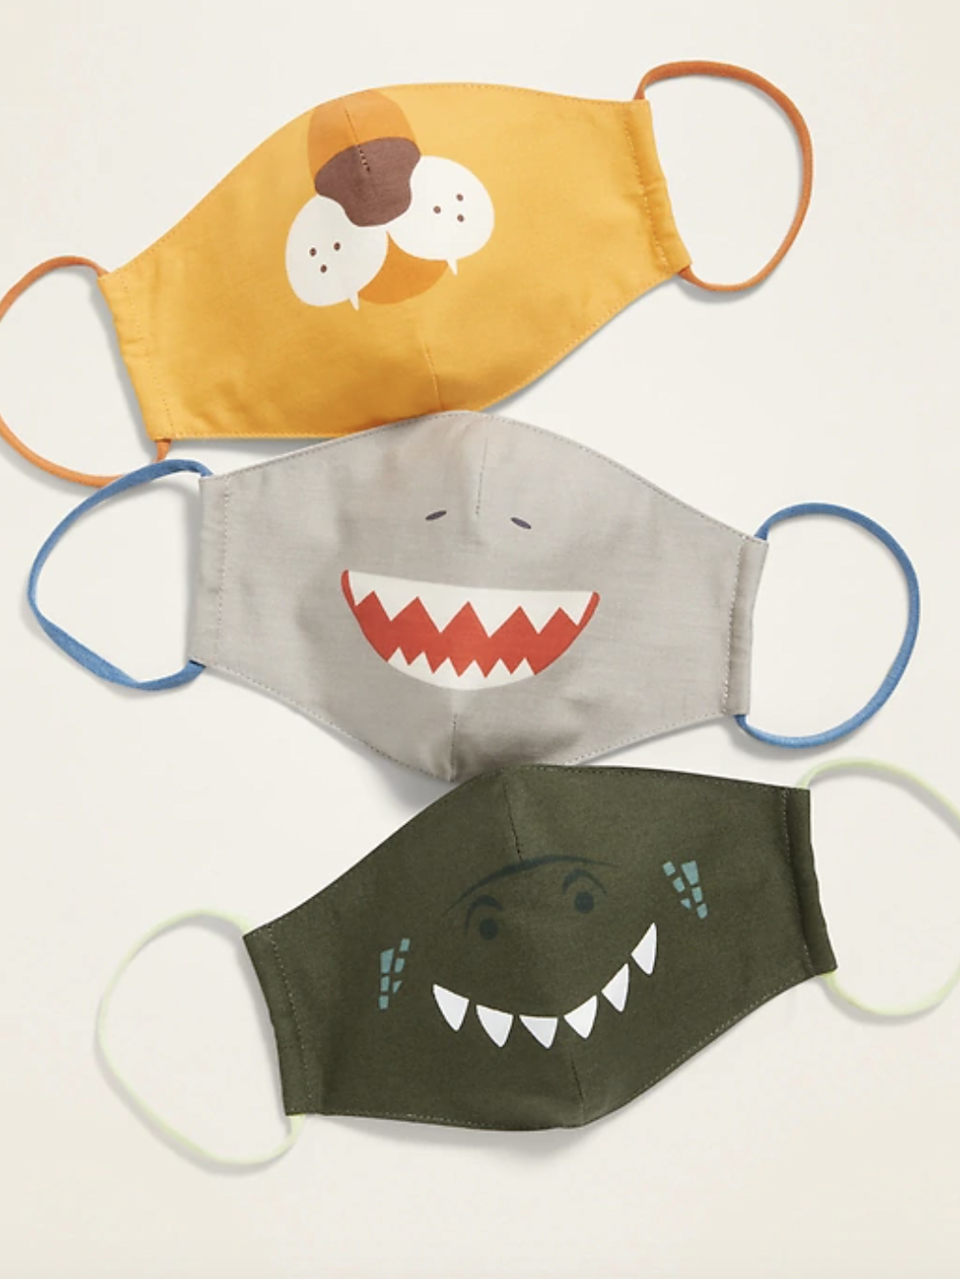 "Don't have time to grab a costume for your kid this year? Avoid a frenzied trip to Spirit and see if your favorite retailer's coronavirus masks can play double duty as Halloween costumes. $10, Old Navy. <a href=""https://oldnavy.gap.com/browse/product.do?pid=660547052&irgwc=1&clickid=Uxuz-pUM%3AxyOTbRwUx0Mo38XUkiVawTxwylhTQ0&ap=6&tid=onaff9017586&siteID=onafcid383278#pdp-page-content"" rel=""nofollow noopener"" target=""_blank"" data-ylk=""slk:Get it now!"" class=""link rapid-noclick-resp"">Get it now!</a>"